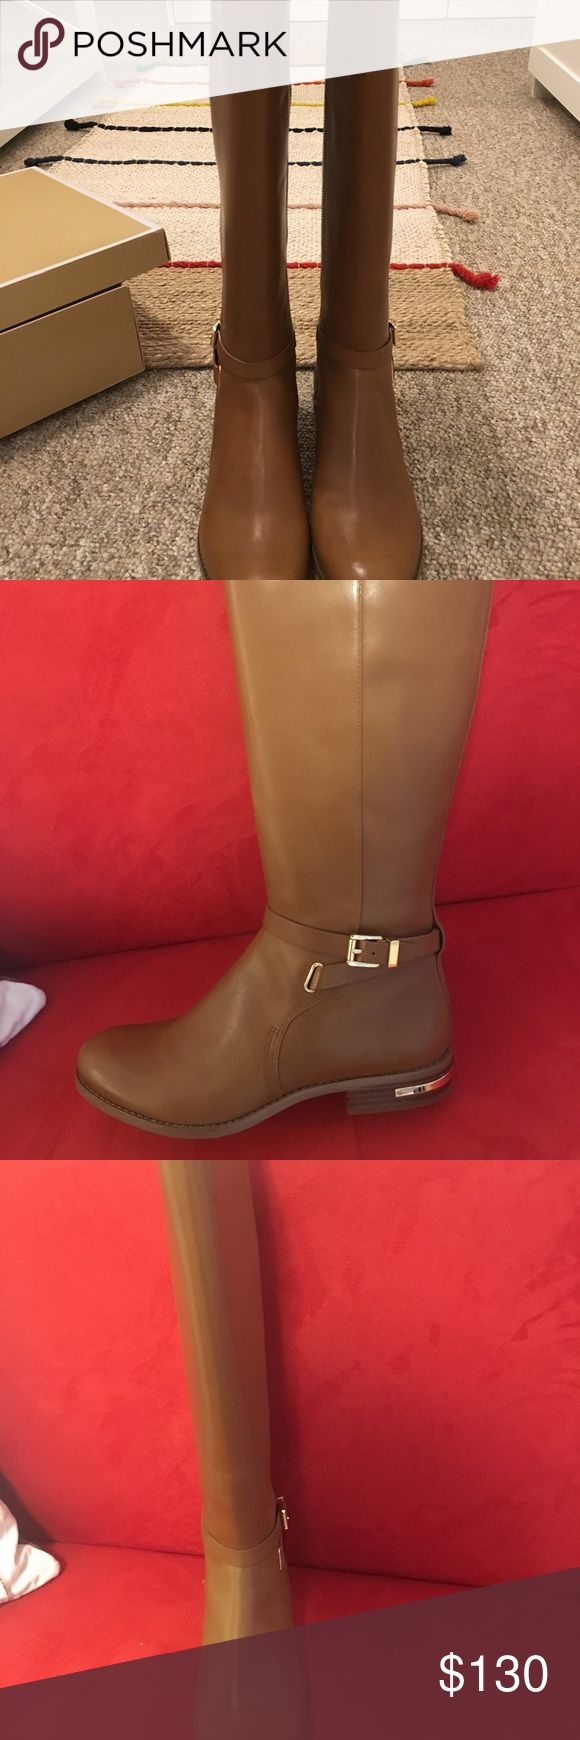 Brand new MK boots. Great style! Brand new with original box. KORS Michael Kors Shoes Over the Knee Boots